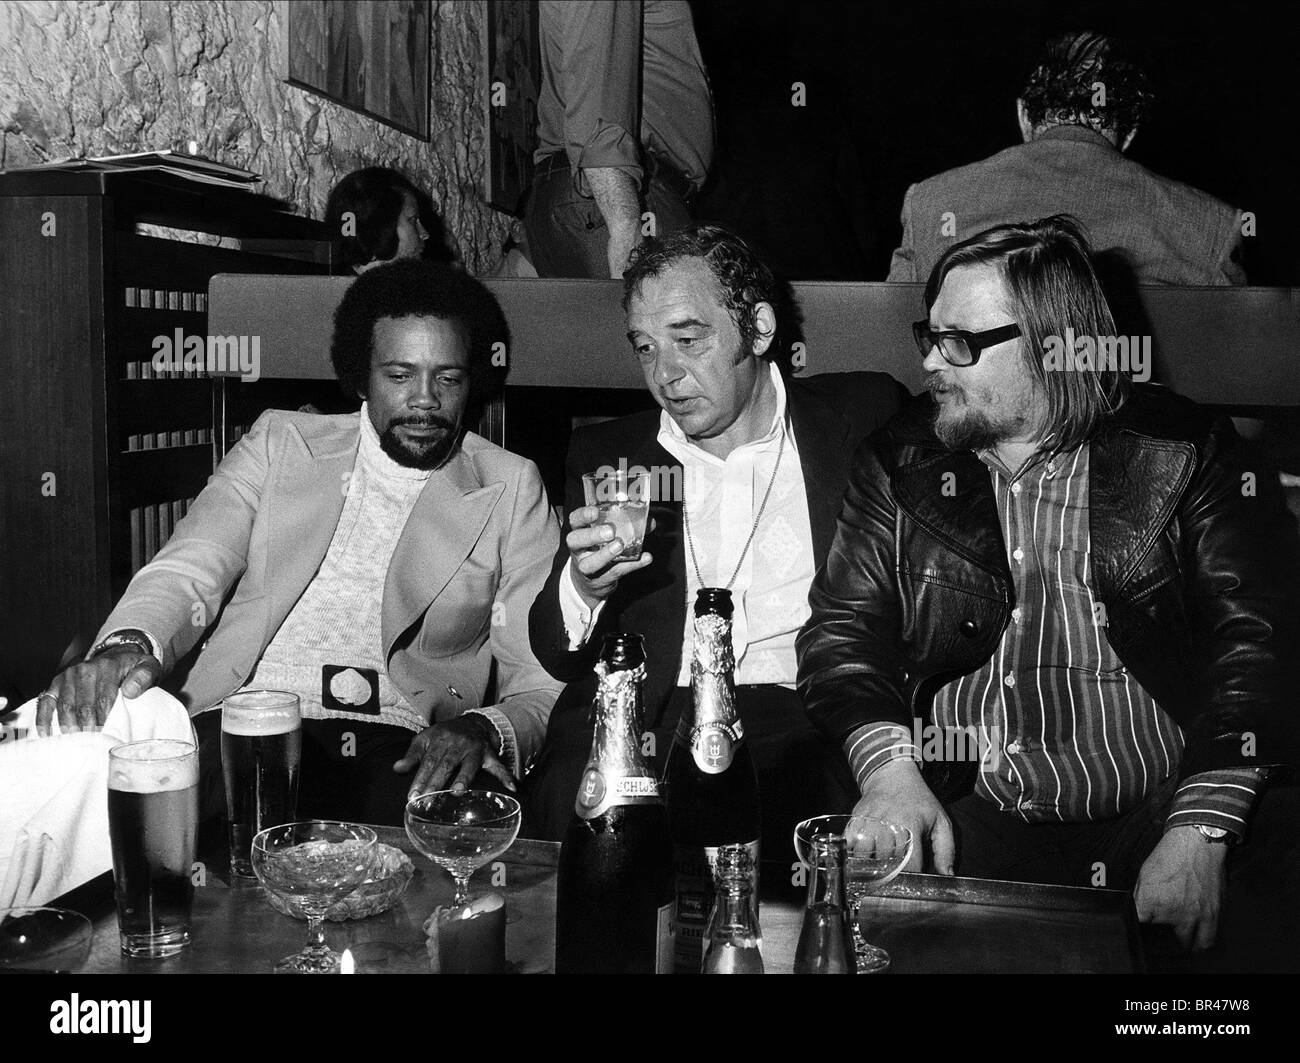 QUINCY JONES PAUL KUHN & PETER HERBOLZHEIMER GOLDEN BATON AWARD (1973) - Stock Image